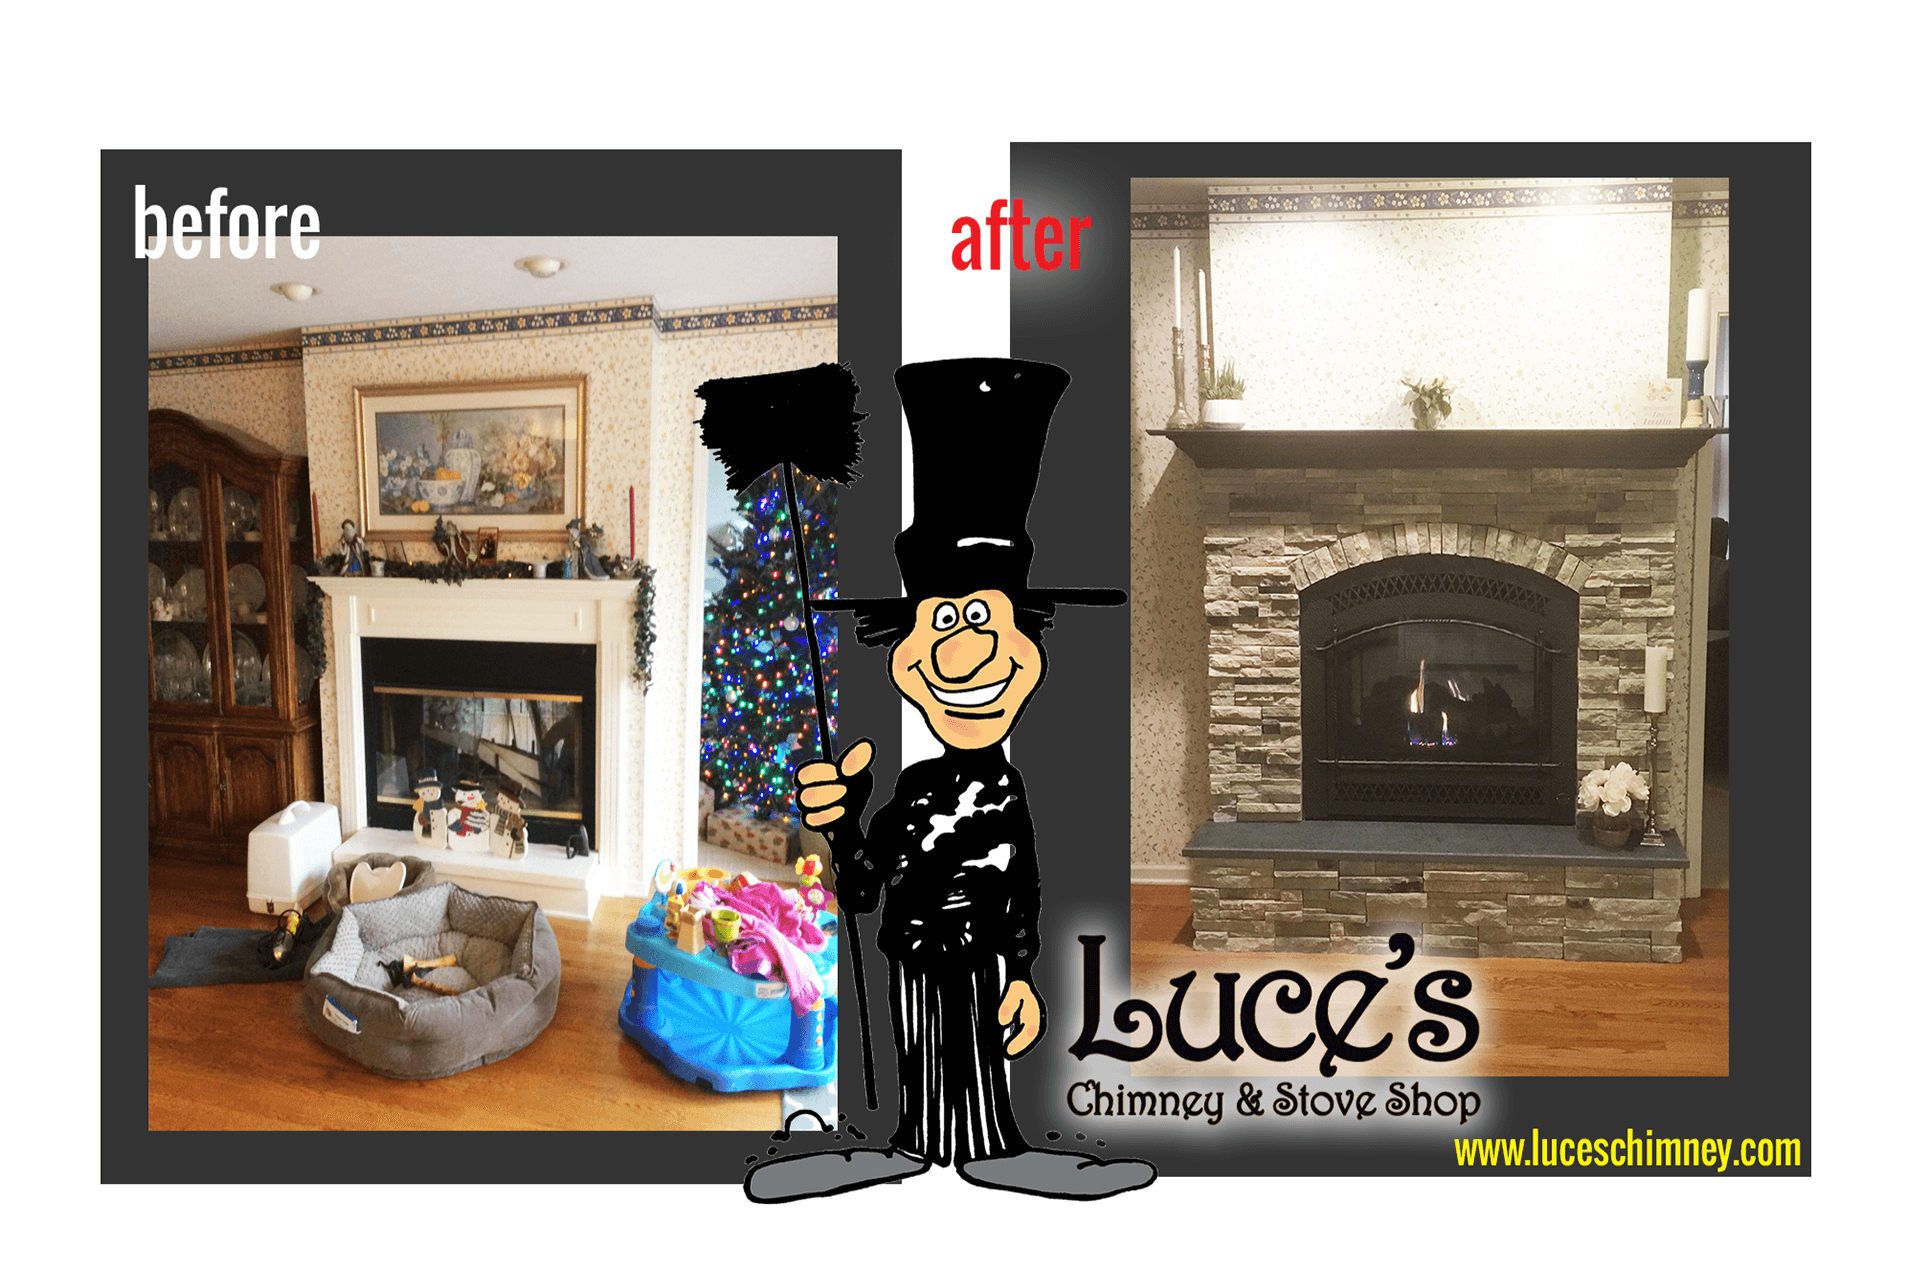 Fireplace remodeling ideas, a before & after updated fireplace, including custom fireplace rock, from Luce's Chimney & Stove Shop.